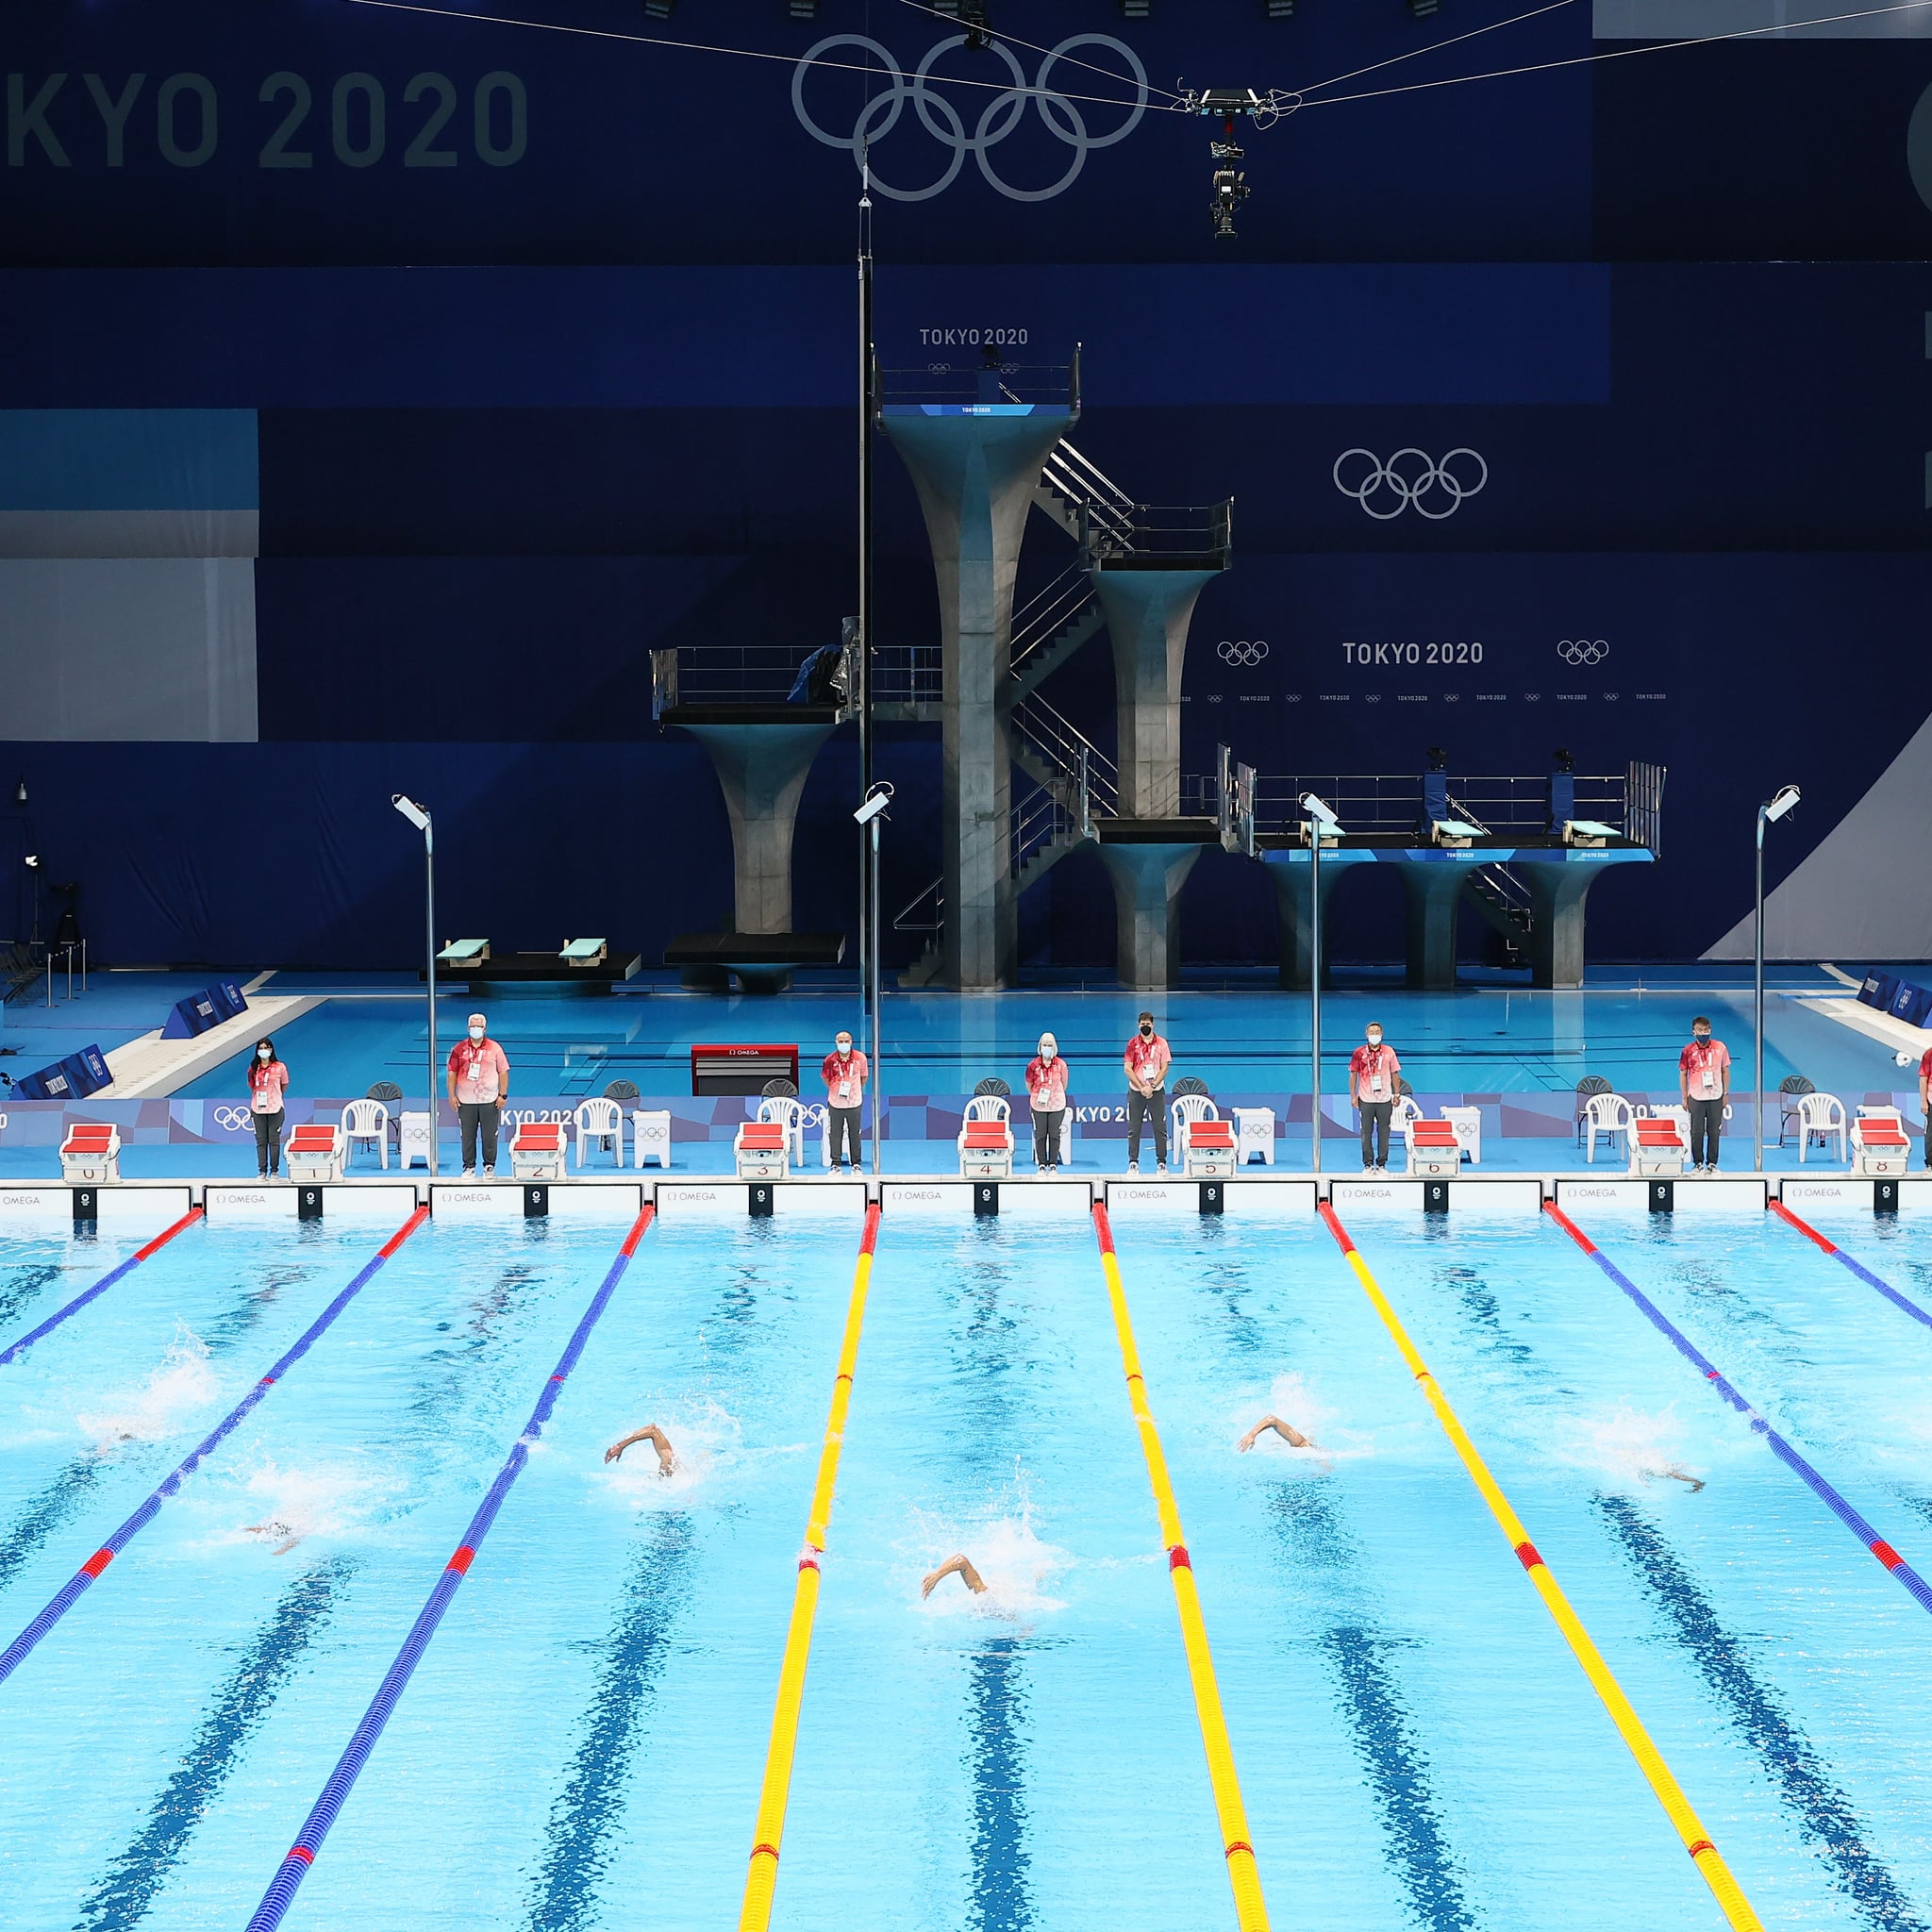 Why the Middle Lanes Are a Coveted Spot for Olympic Swimmers